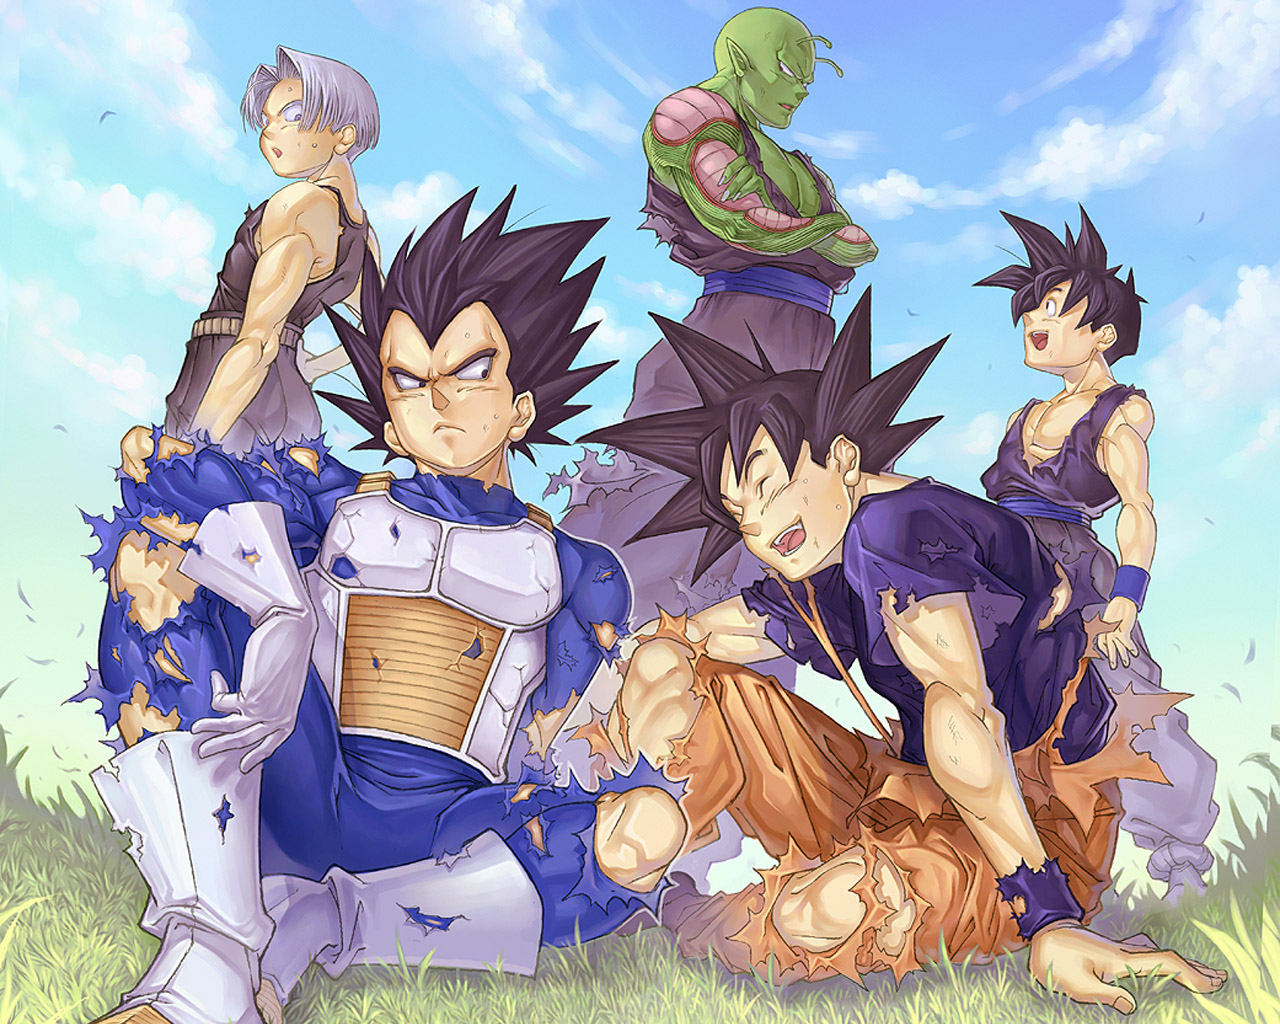 http://1.bp.blogspot.com/-eHIt-PWnIlY/UGtyj4R_1_I/AAAAAAAAAlc/tj8ol5frXHY/s1600/6854_dragon_ball_z_hd_wallpapers.jpg